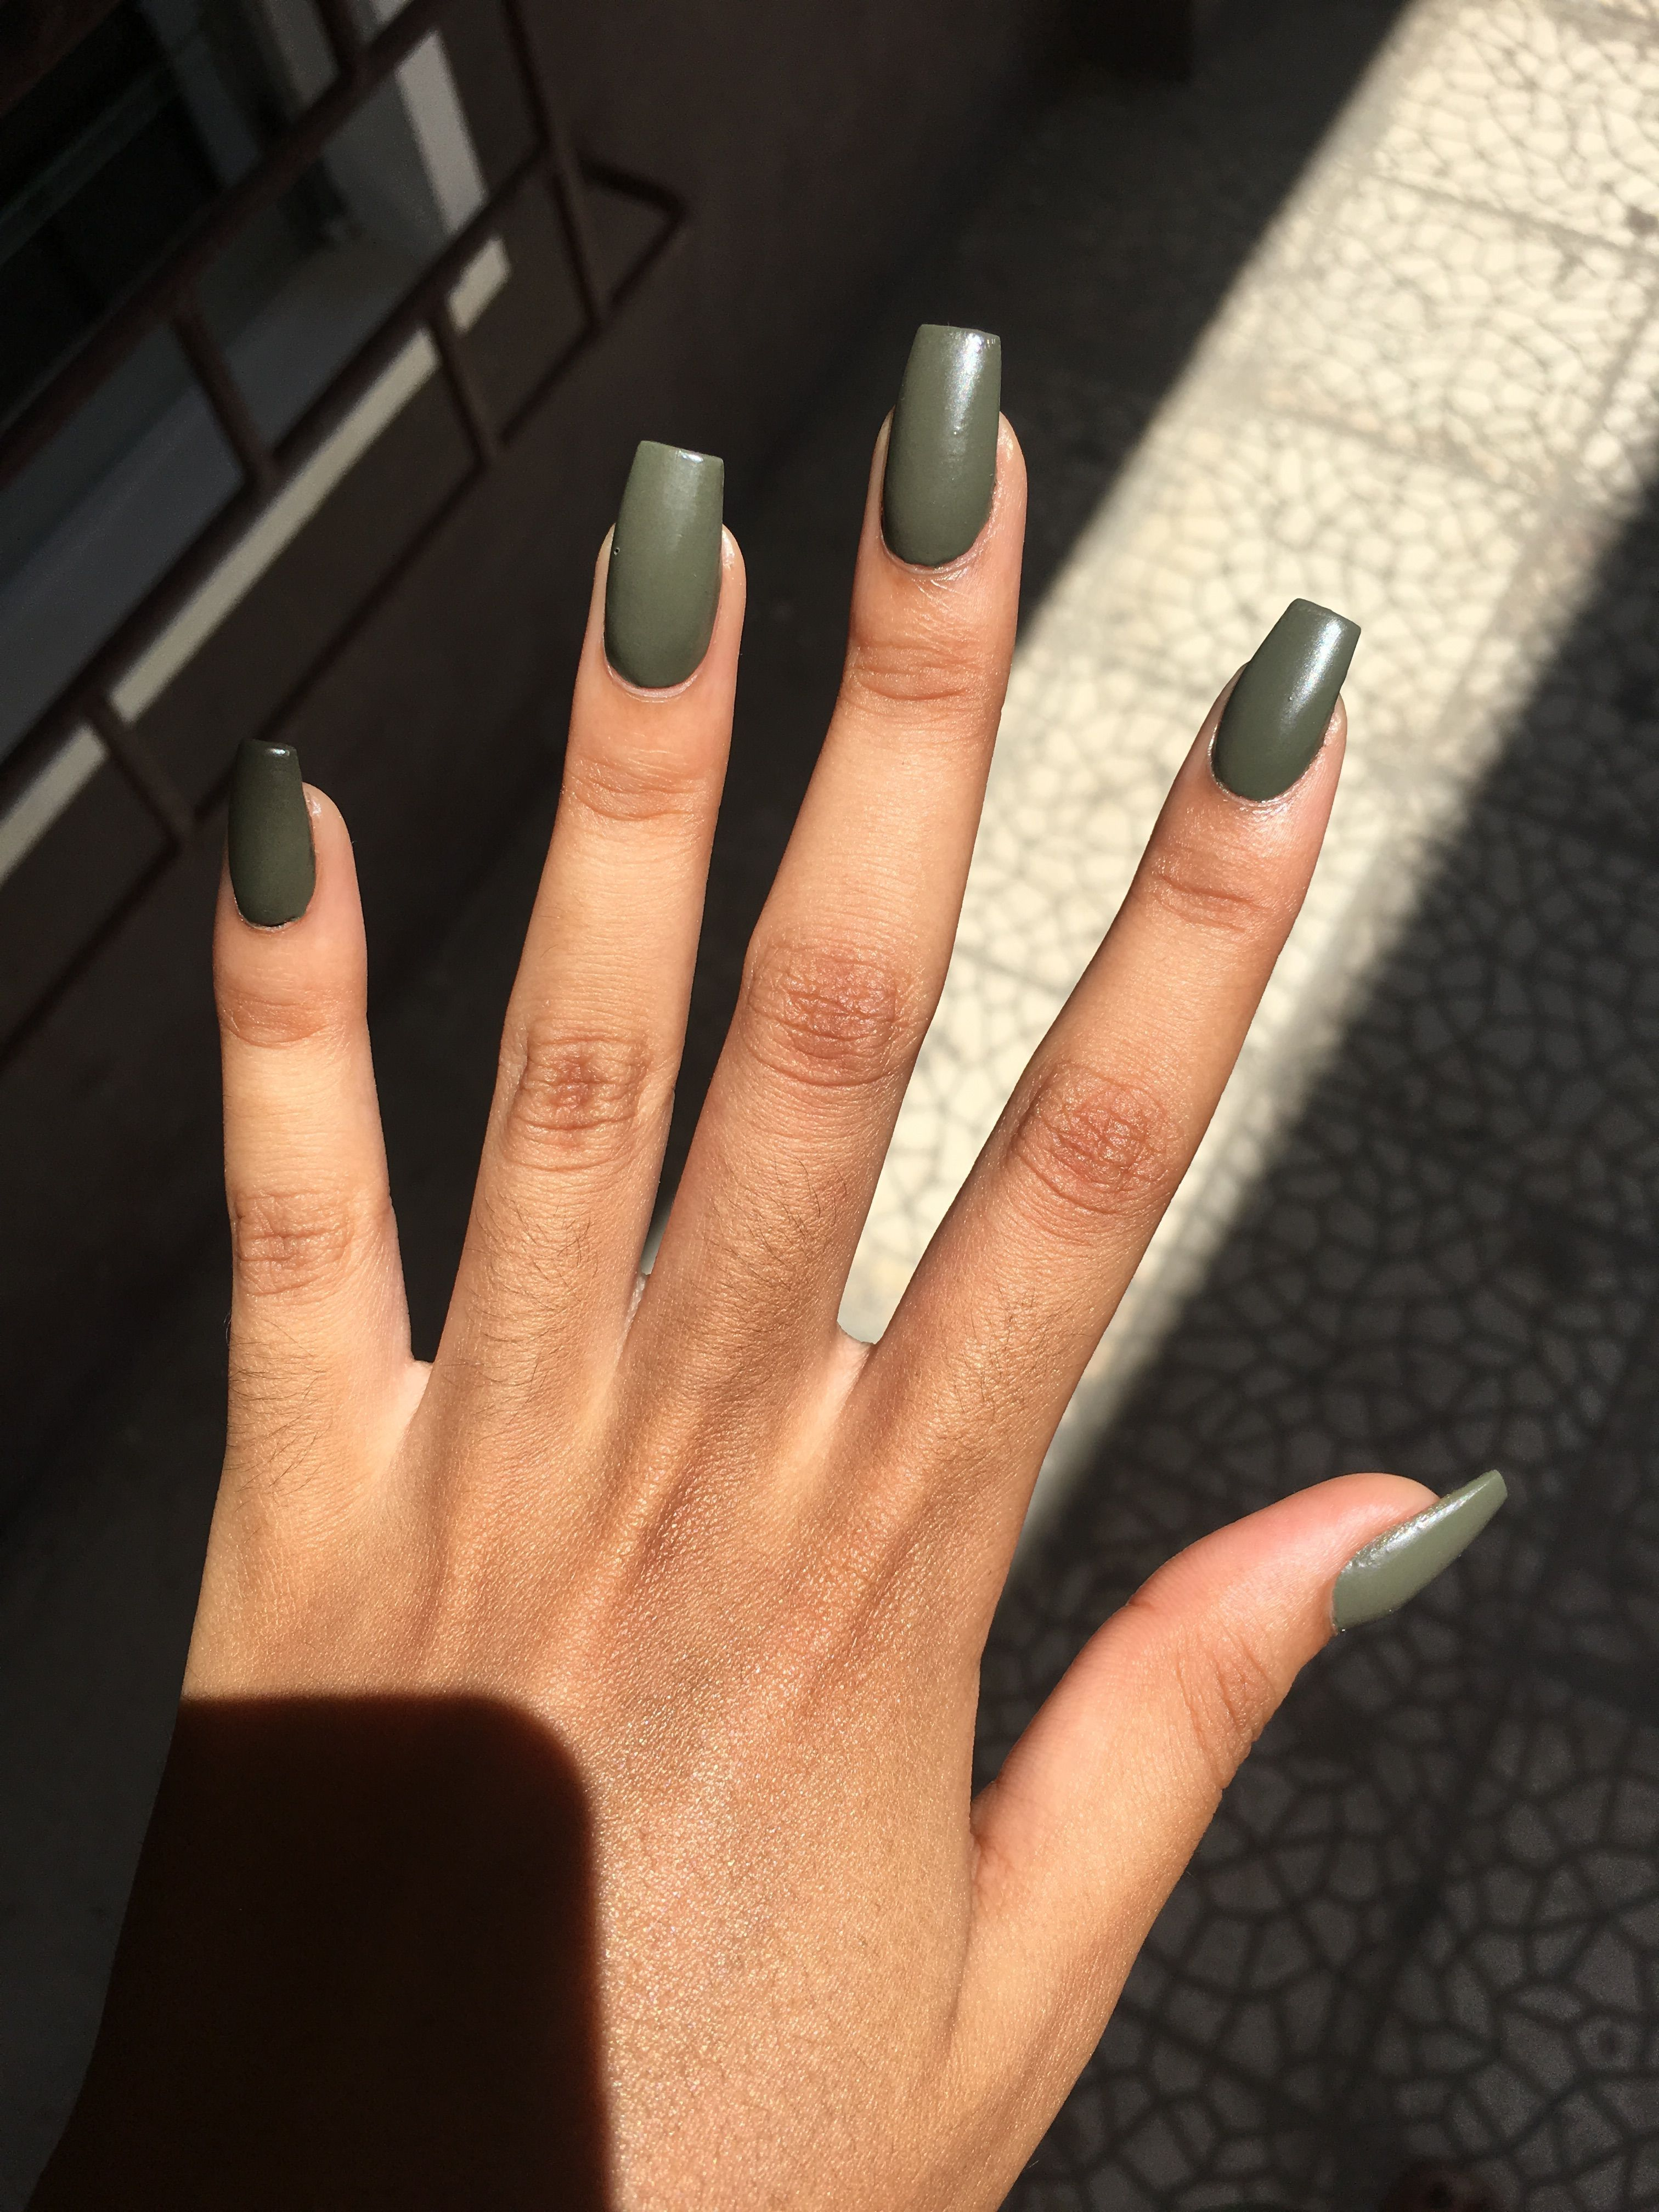 Green Matte Short Coffin Acrylic Nails Acrylicnailsstiletto Orange Acrylic Nails Green Acrylic Nails Square Acrylic Nails